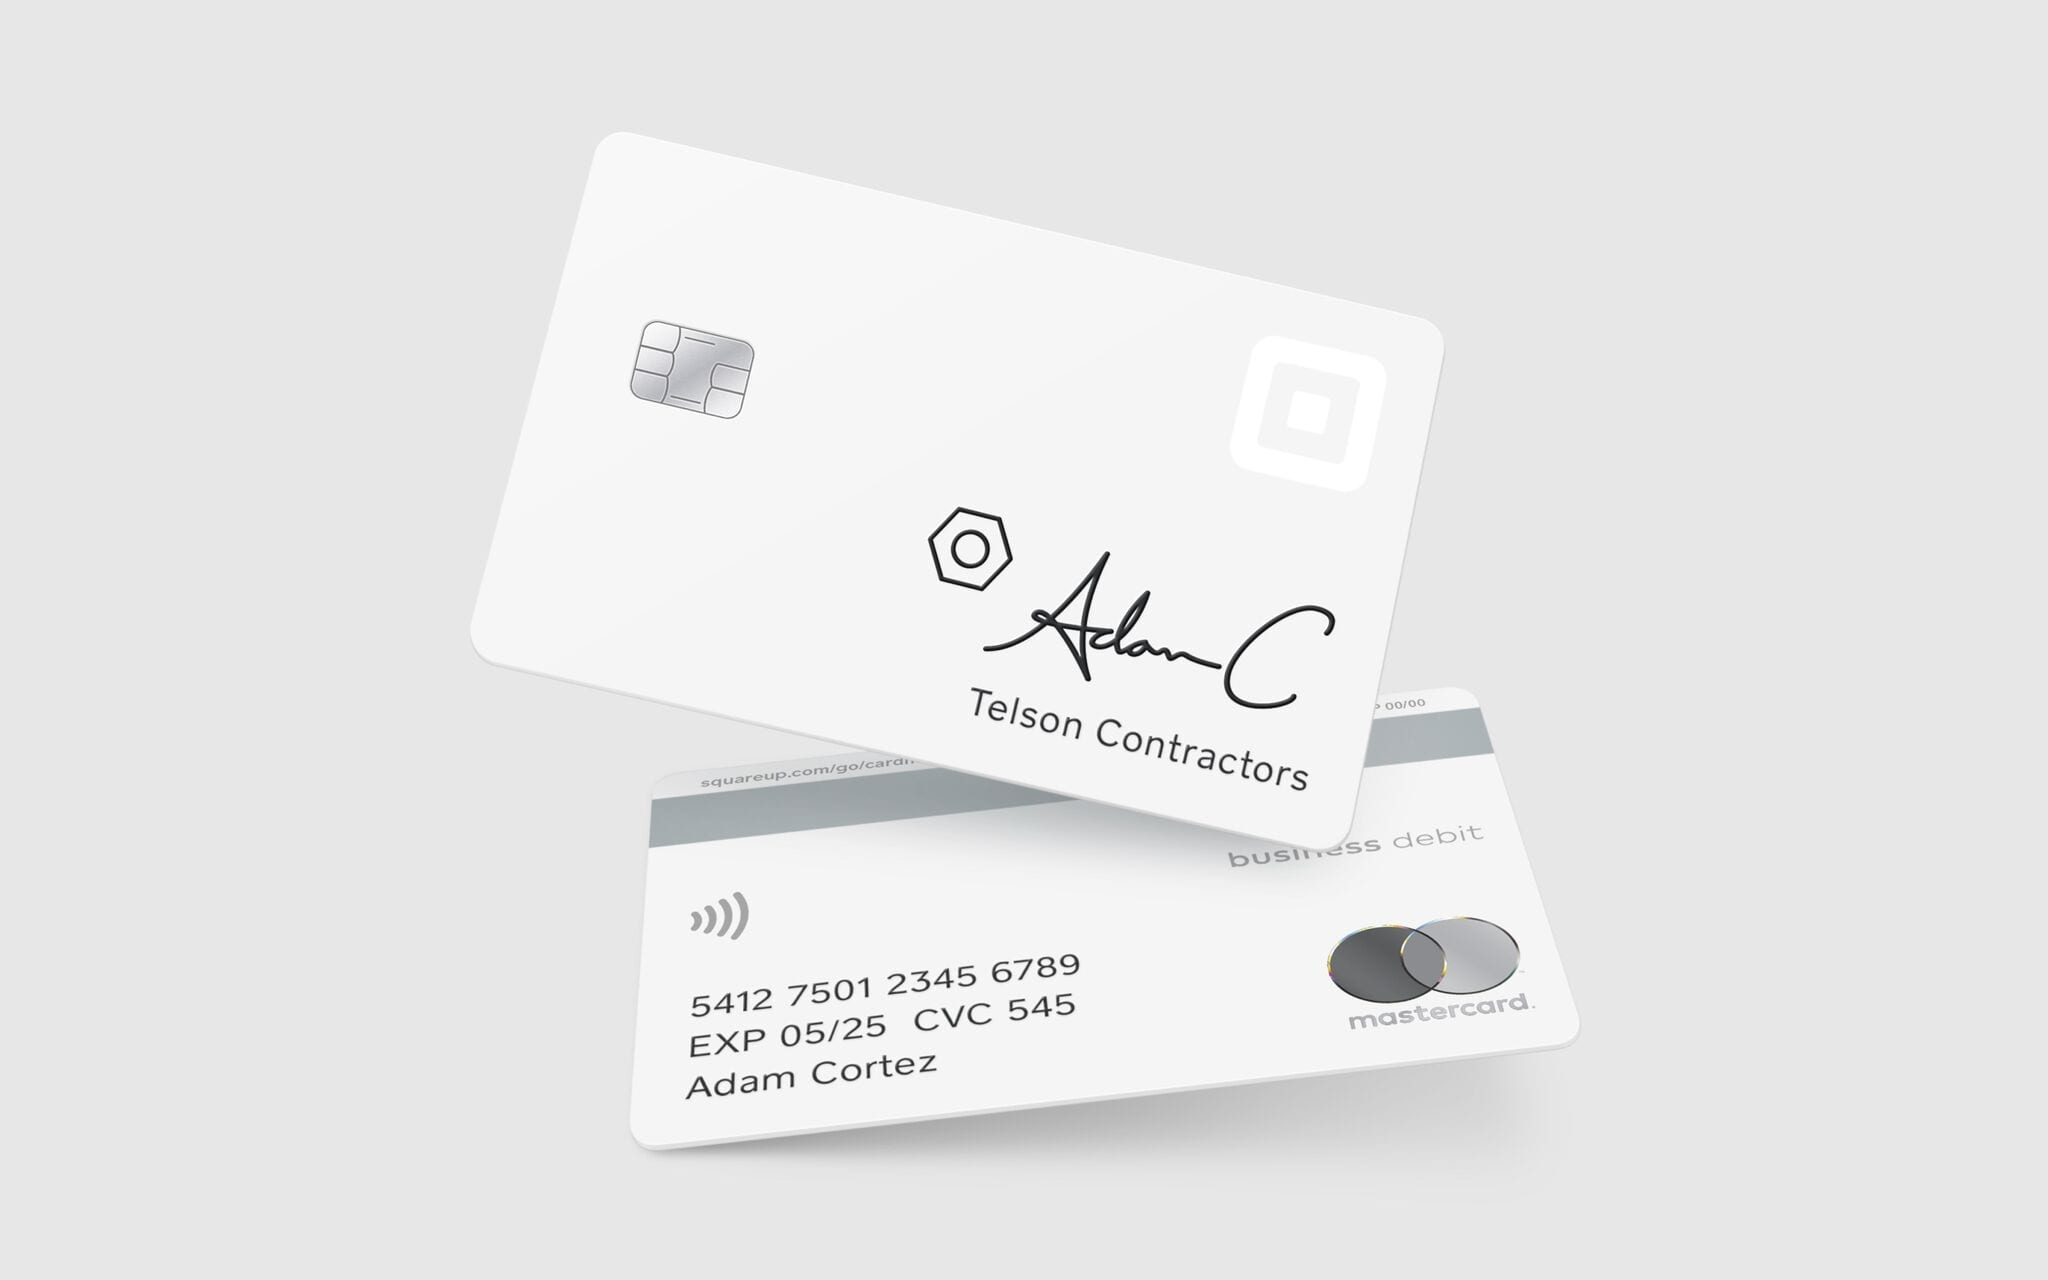 Square Launches Square Card Business Debit Card